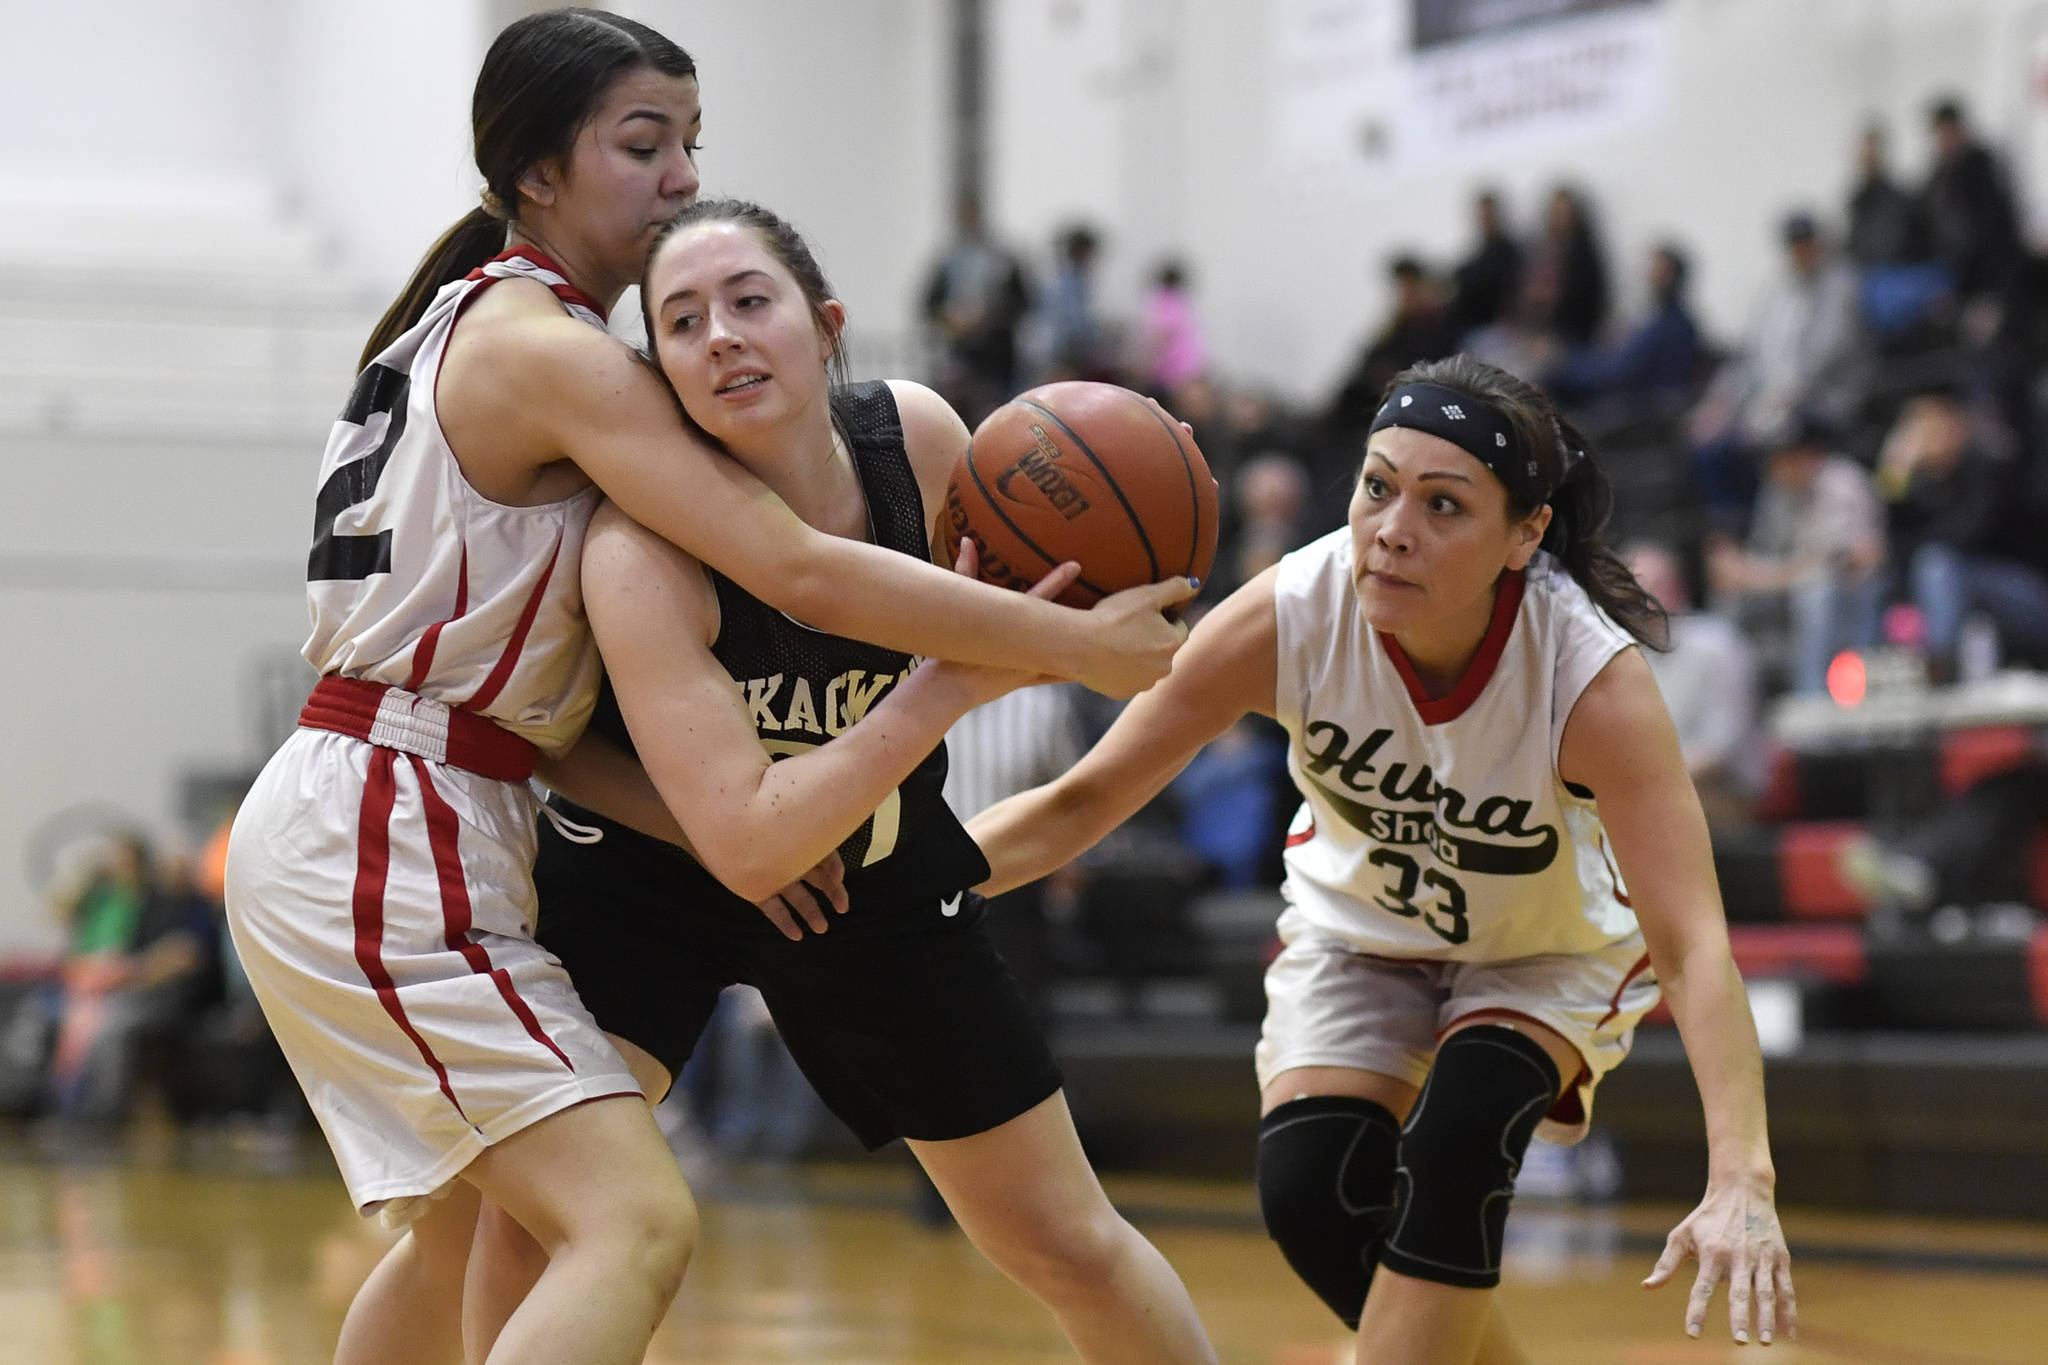 Skagway's Hailey Jensen, center, is closely guarded by Hoonah's Ronnie Roberts, left, and Krissy Benn at the Juneau Lions Club 73rd Annual Gold Medal Basketball Tournament at Juneau-Douglas High School: Yadaa.at Kalé on Tuesday, March 19, 2019. Skagway won 80-42. (Michael Penn | Juneau Empire)